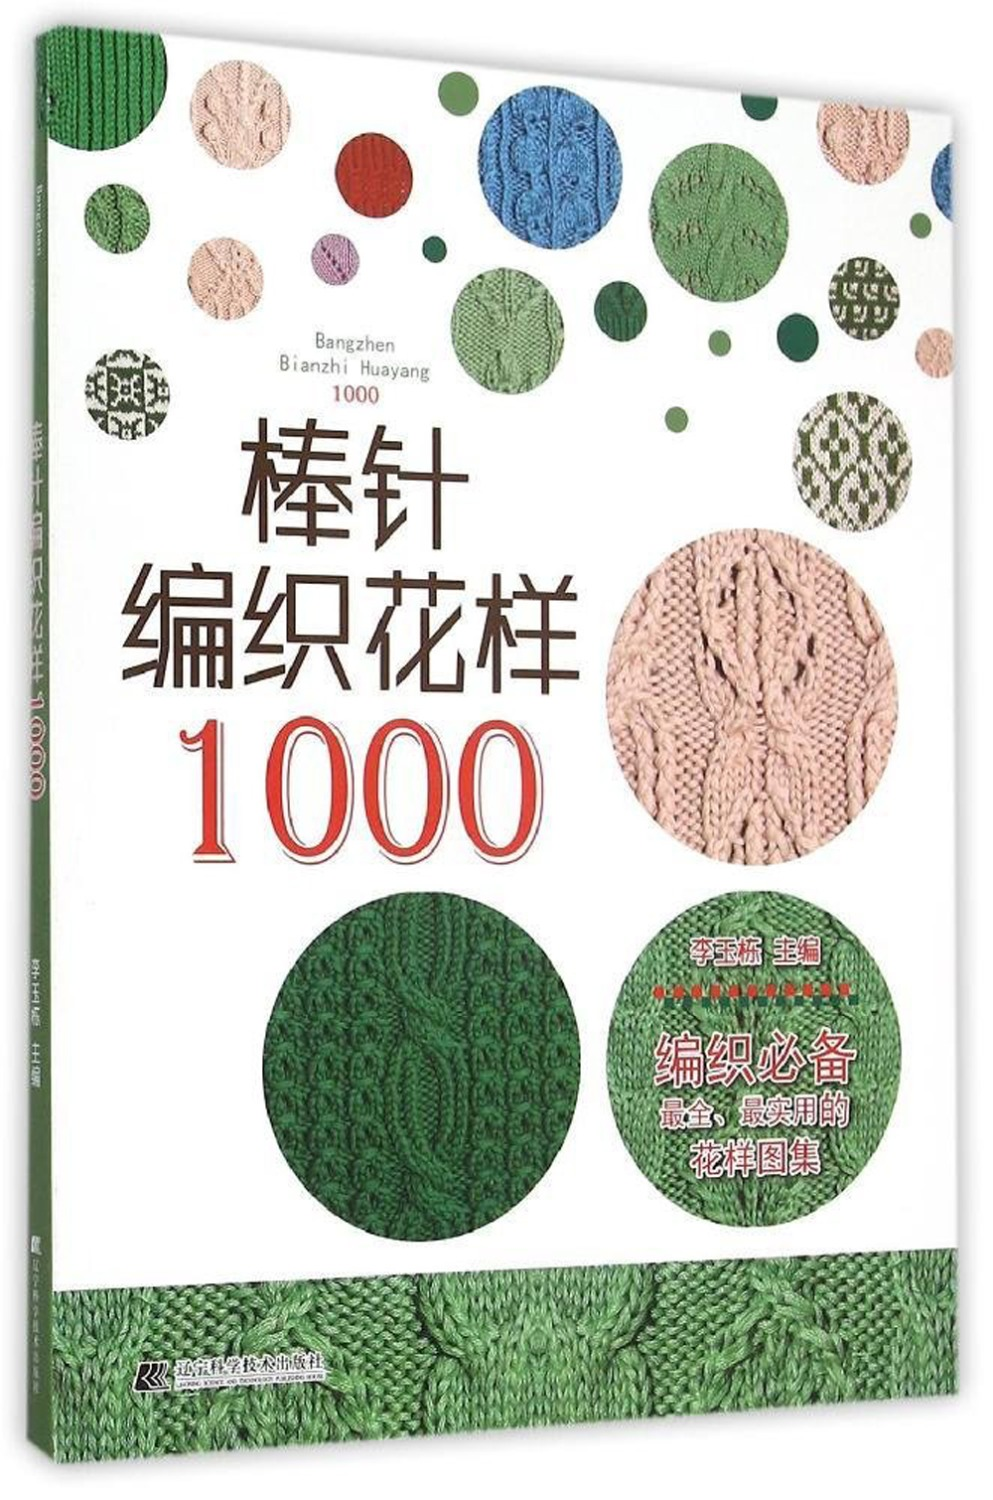 Chinese Knitting Pattern Book with 1000 Different Pattern Chinese Knitting Pattern Book with 1000 Different Pattern